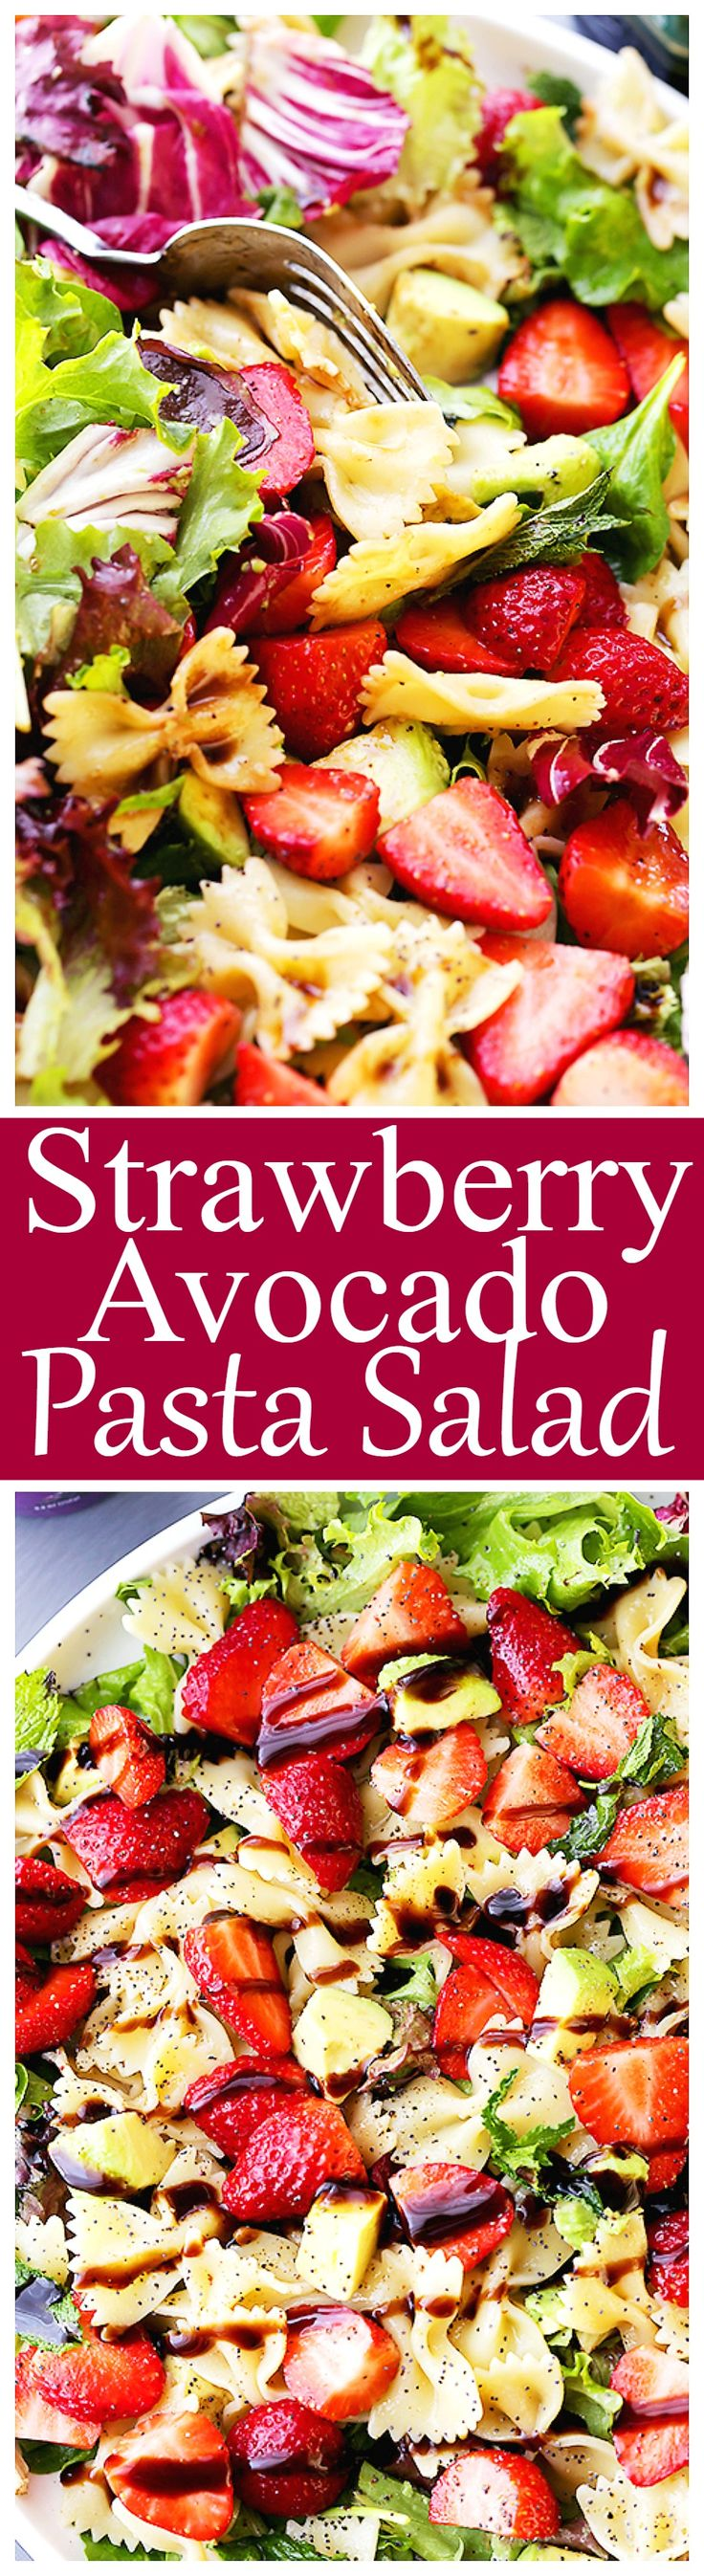 Strawberry Avocado Pasta Salad with Balsamic Glaze Recipe - Strawberries, avocados and bow tie pasta all tossed with an irresistibly creamy balsamic glaze. The ultimate potluck salad recipe!